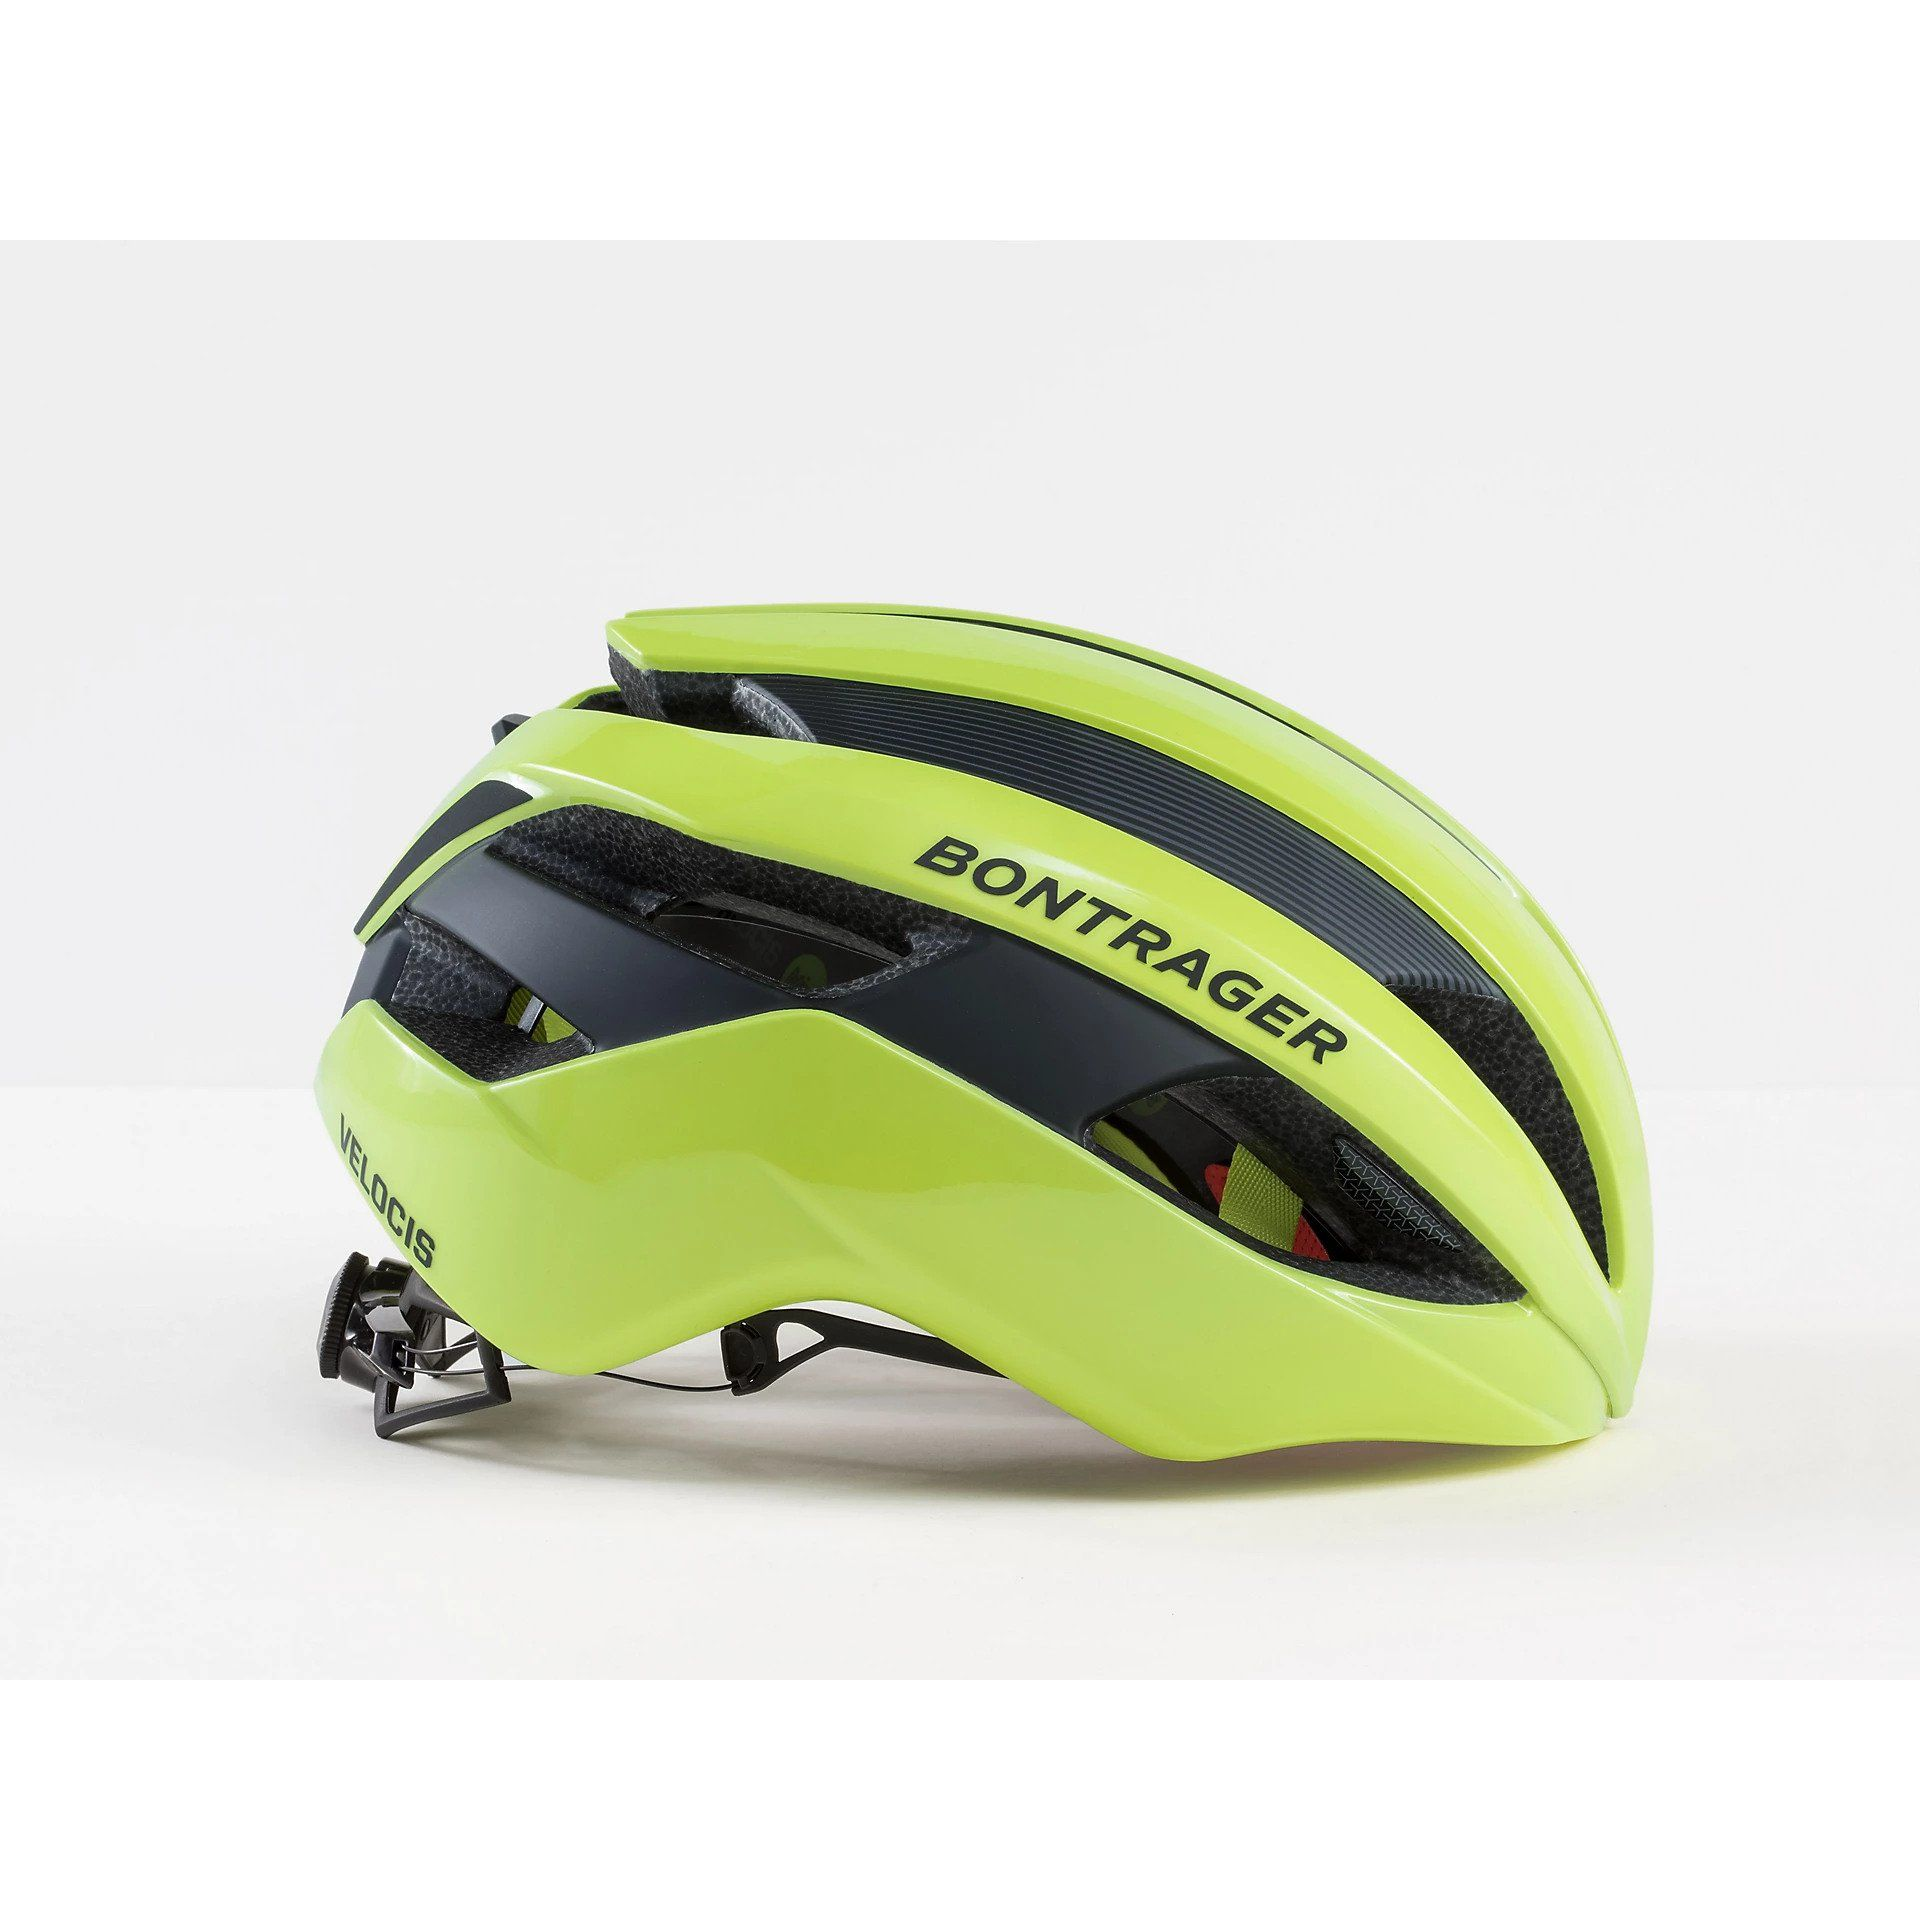 KASK ROWEROWY BONTRAGER VELOCIS MIPS FLUO Z BOKU